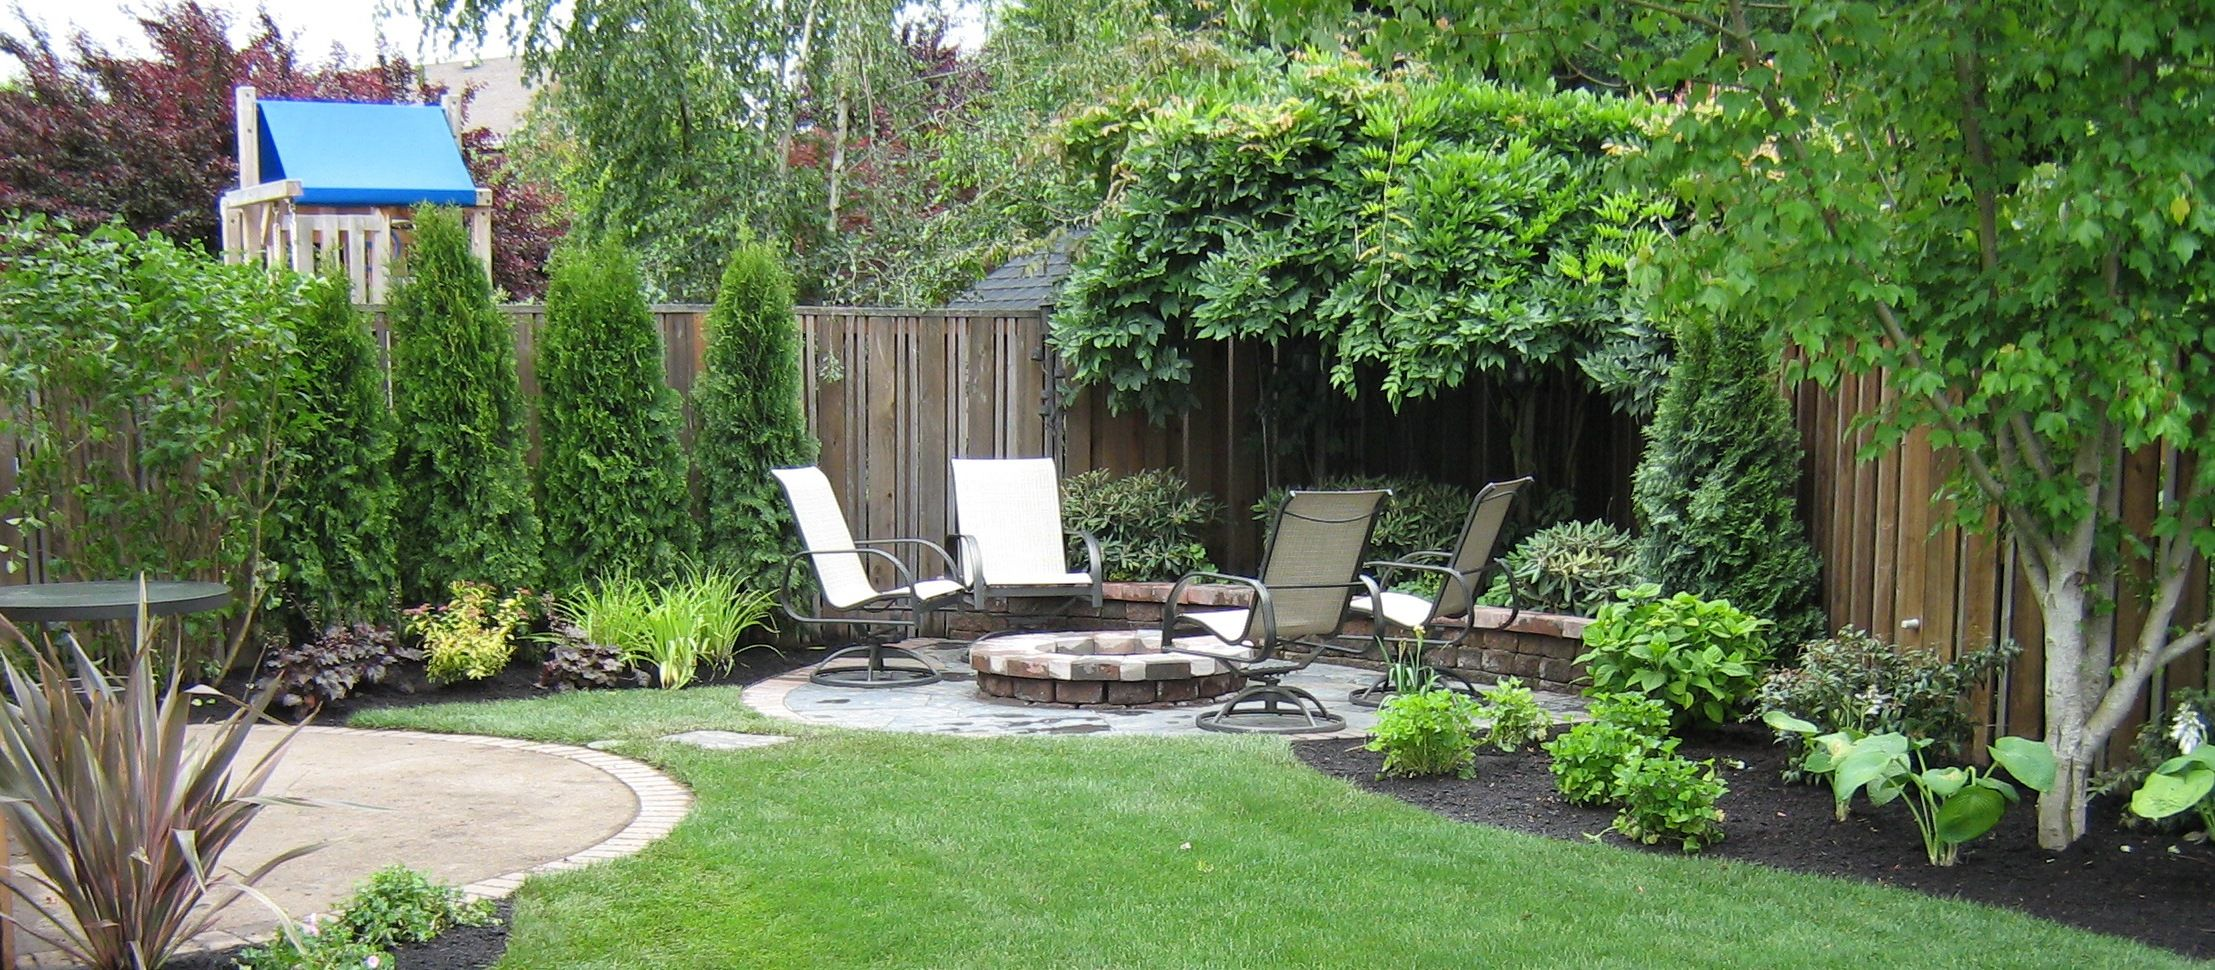 small backyard landscaping ideas photos garden design On garden design ideas for small backyards